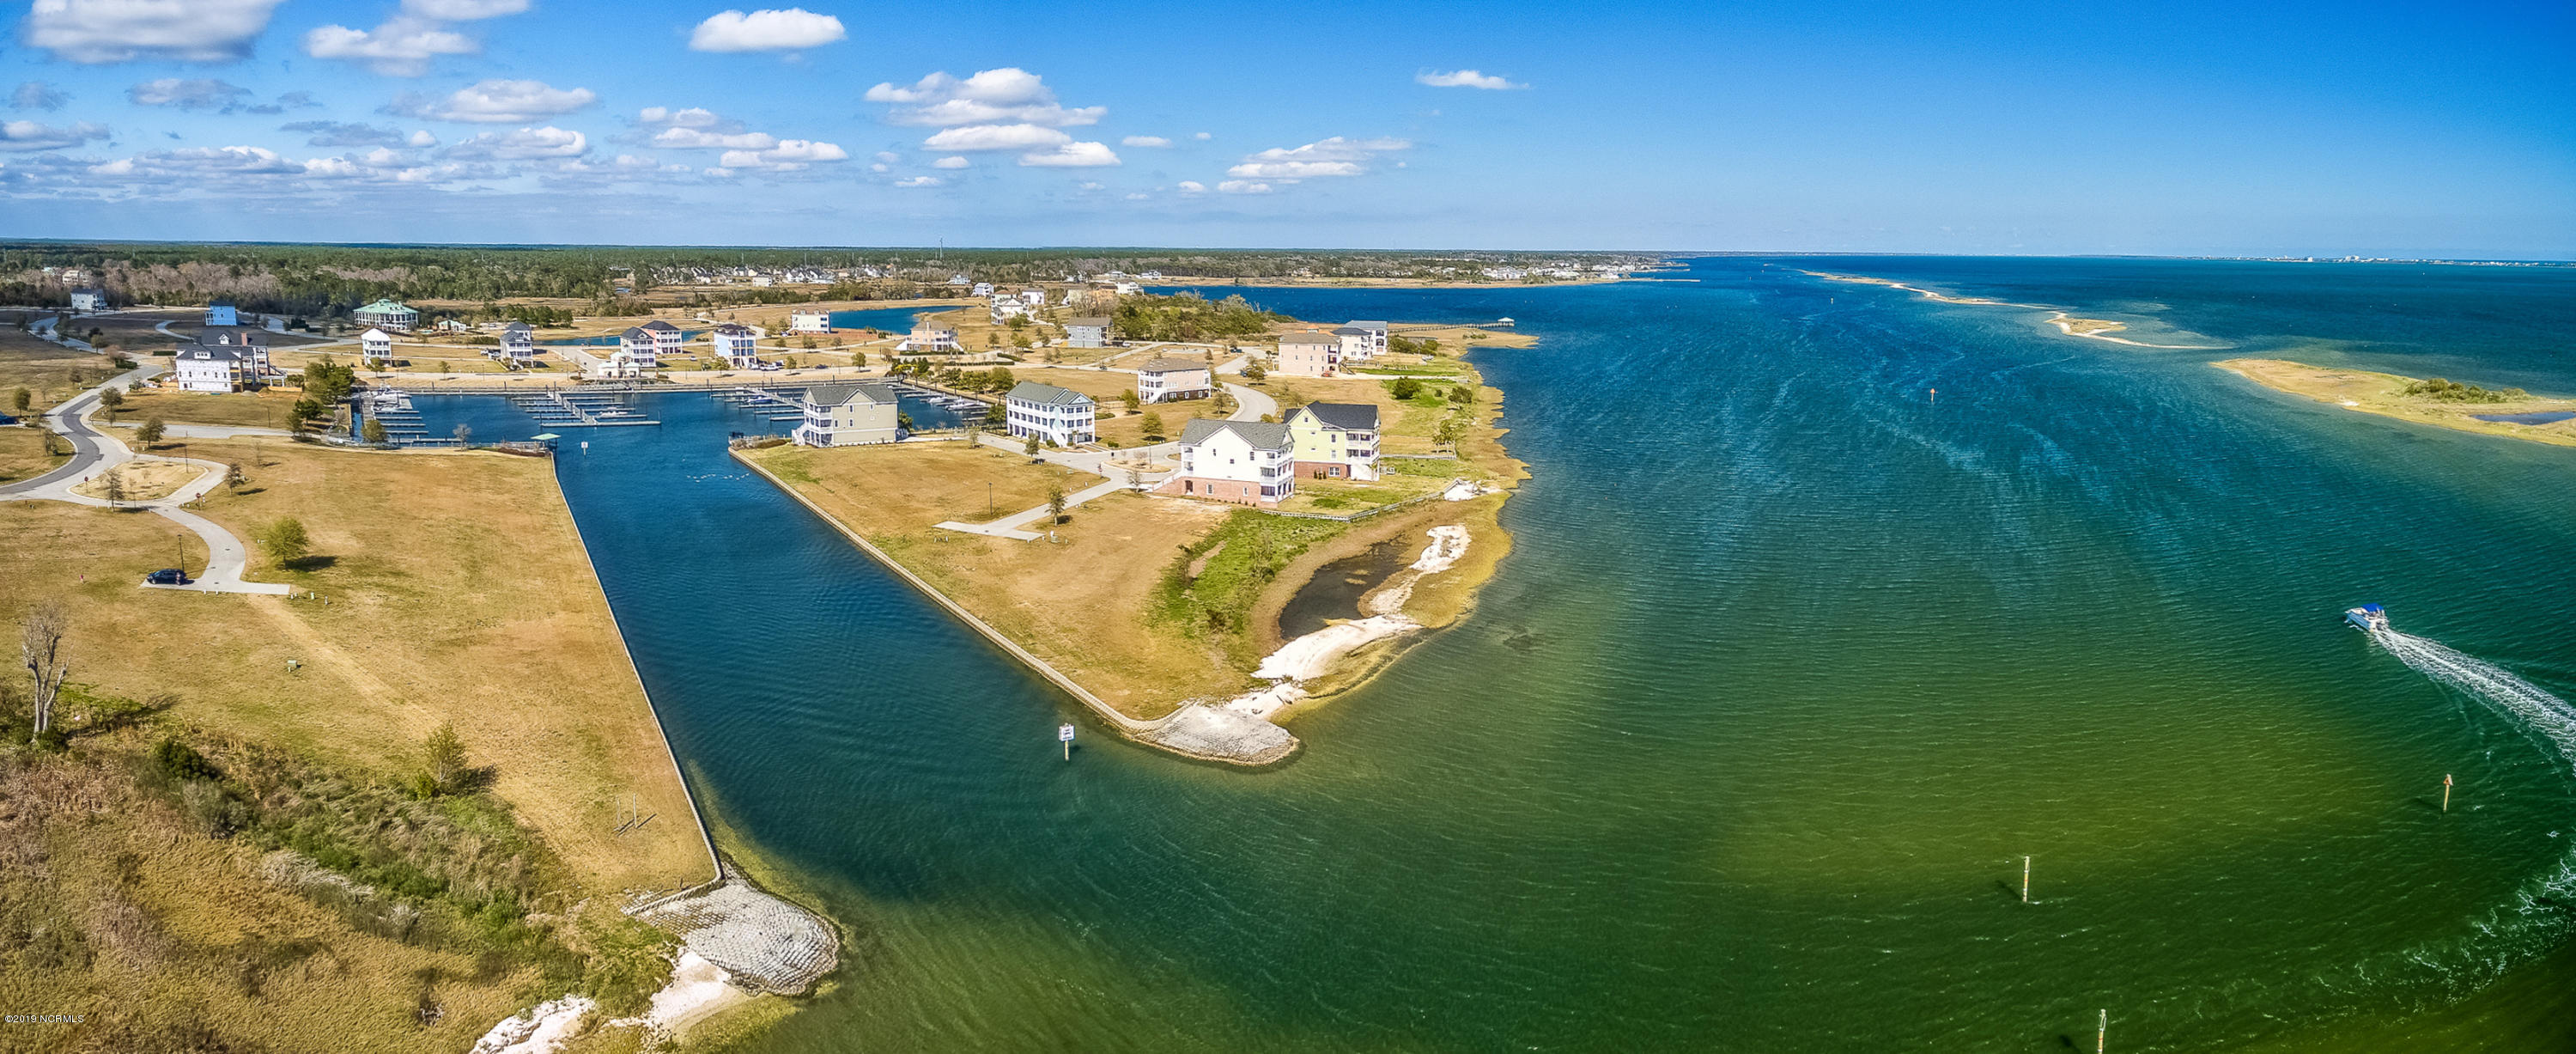 745 Cannonsgate Drive, Newport, North Carolina 28570, ,Residential land,For sale,Cannonsgate,100148320